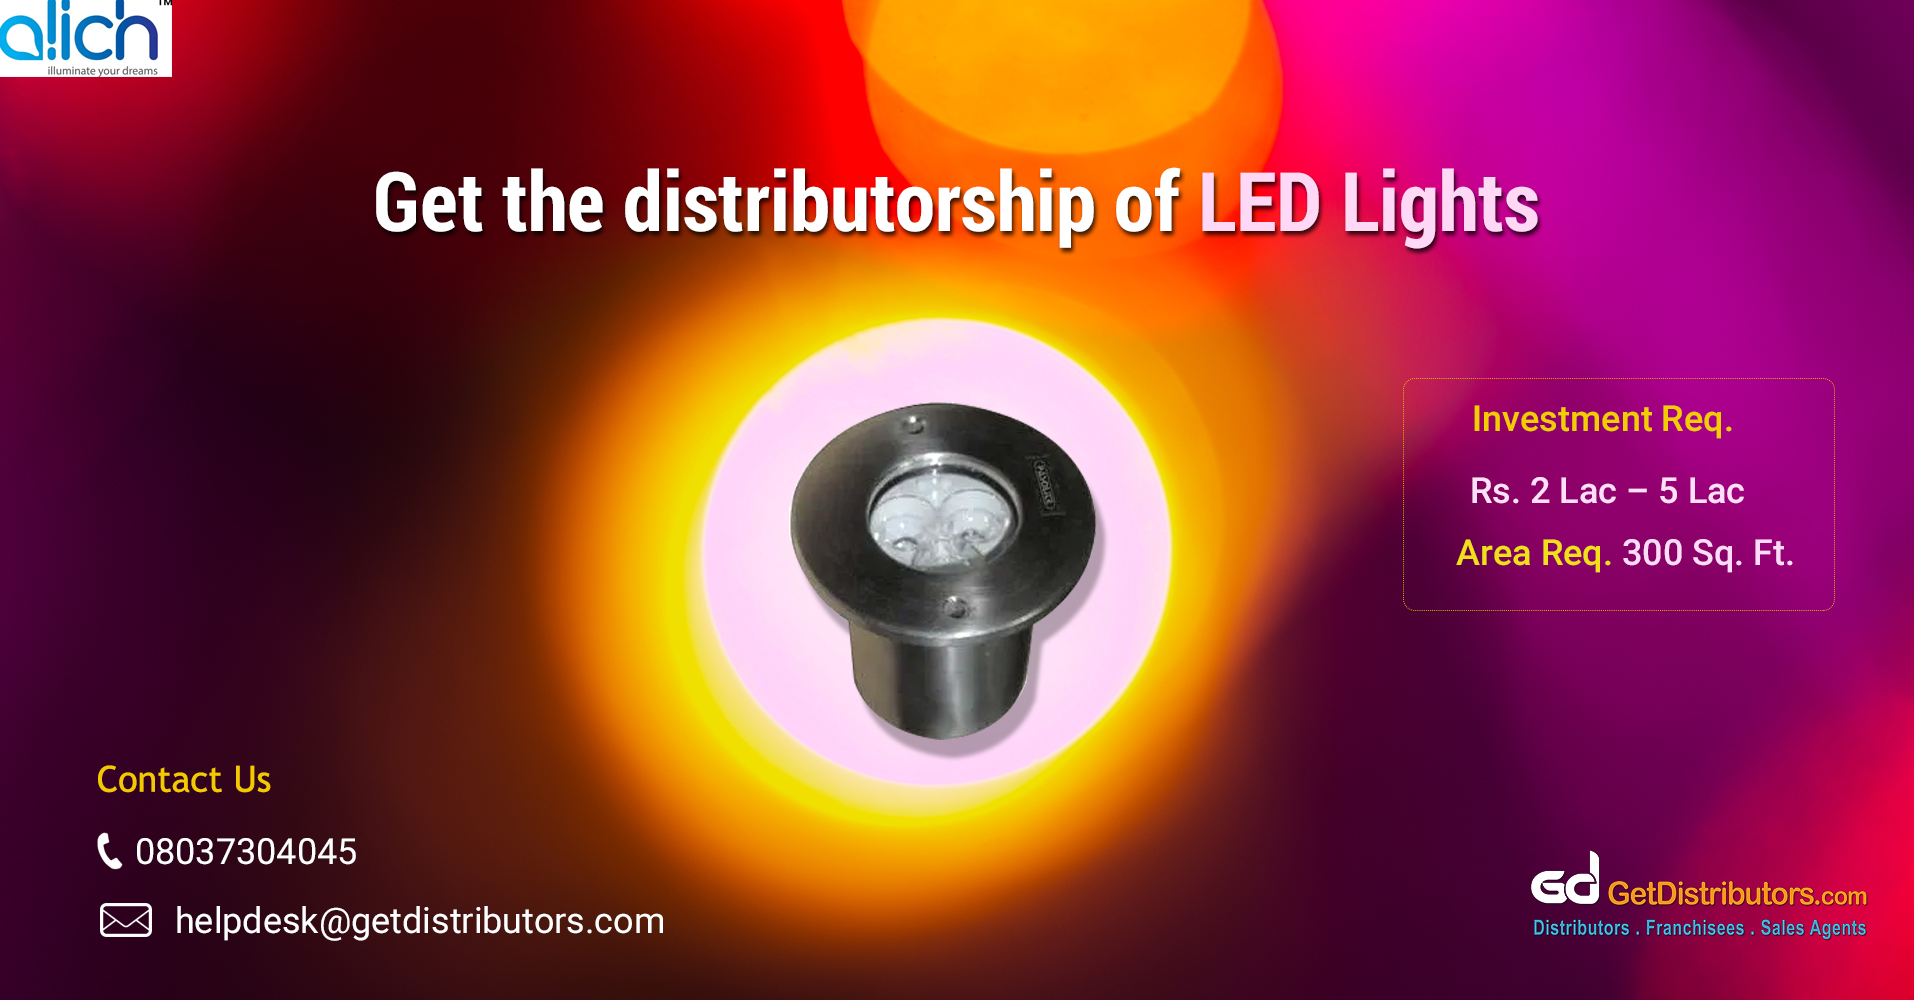 Eco-friendly and energy-efficient LEDs for distribution